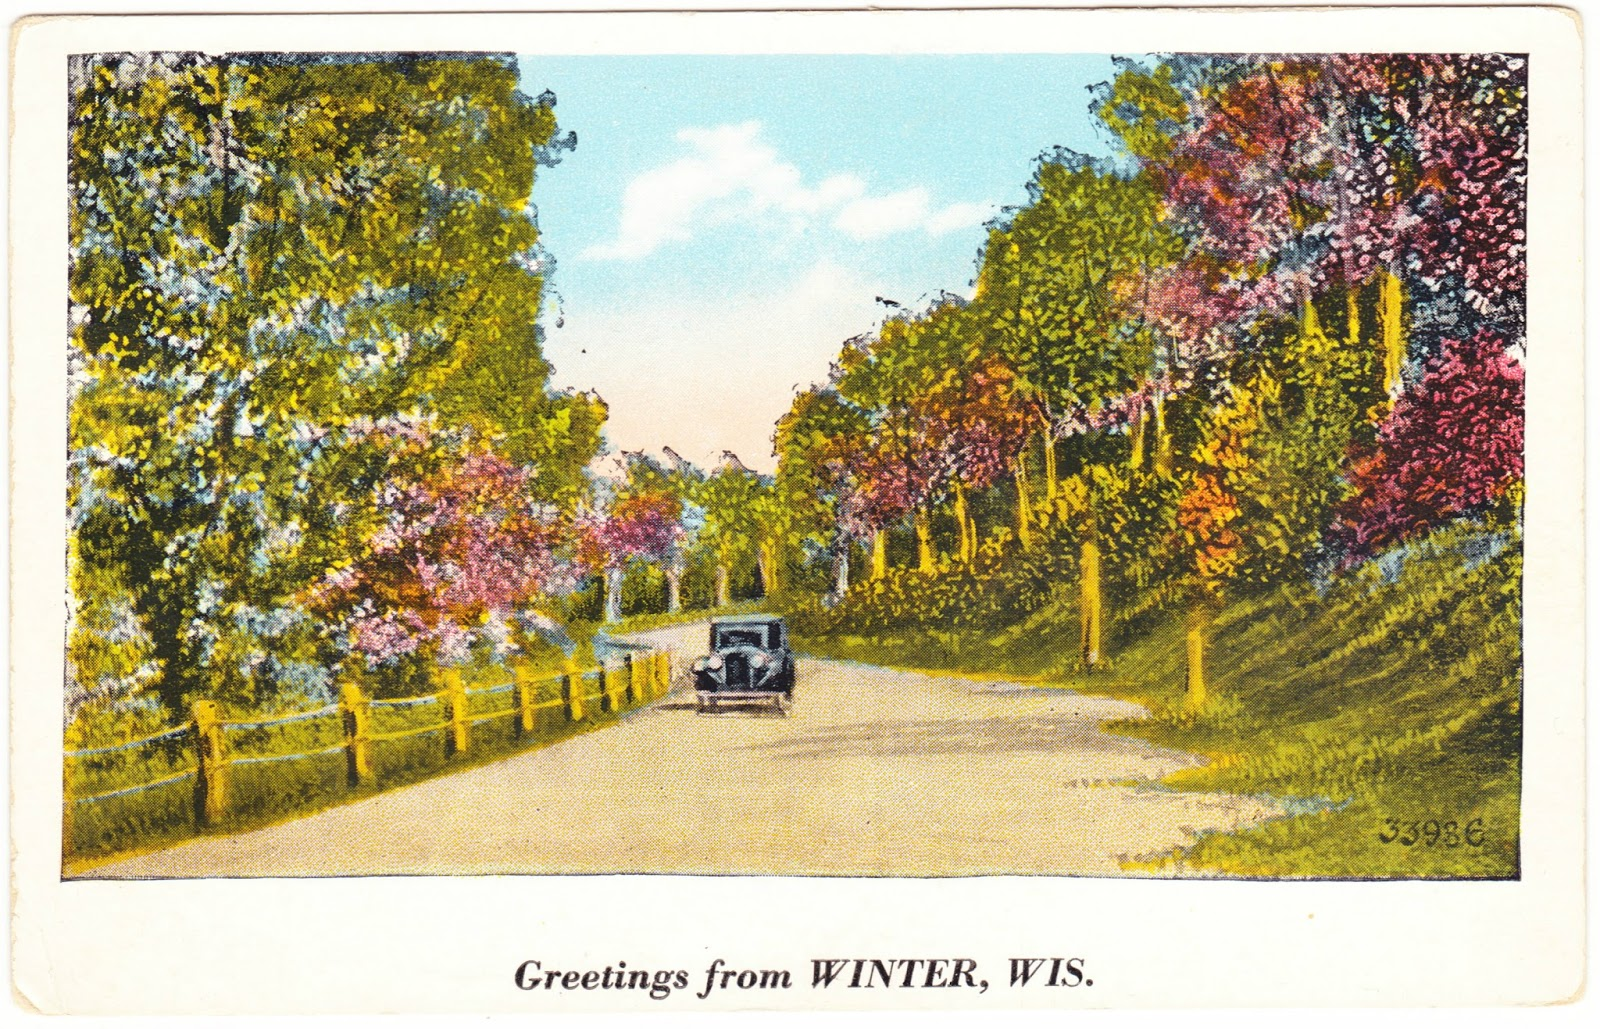 Papergreat pair of greetings from postcards greetings from winter wisconsin population about 230 in the village and 1000 in the town this postcard was mailed in the summer of 1934 to sally at m4hsunfo